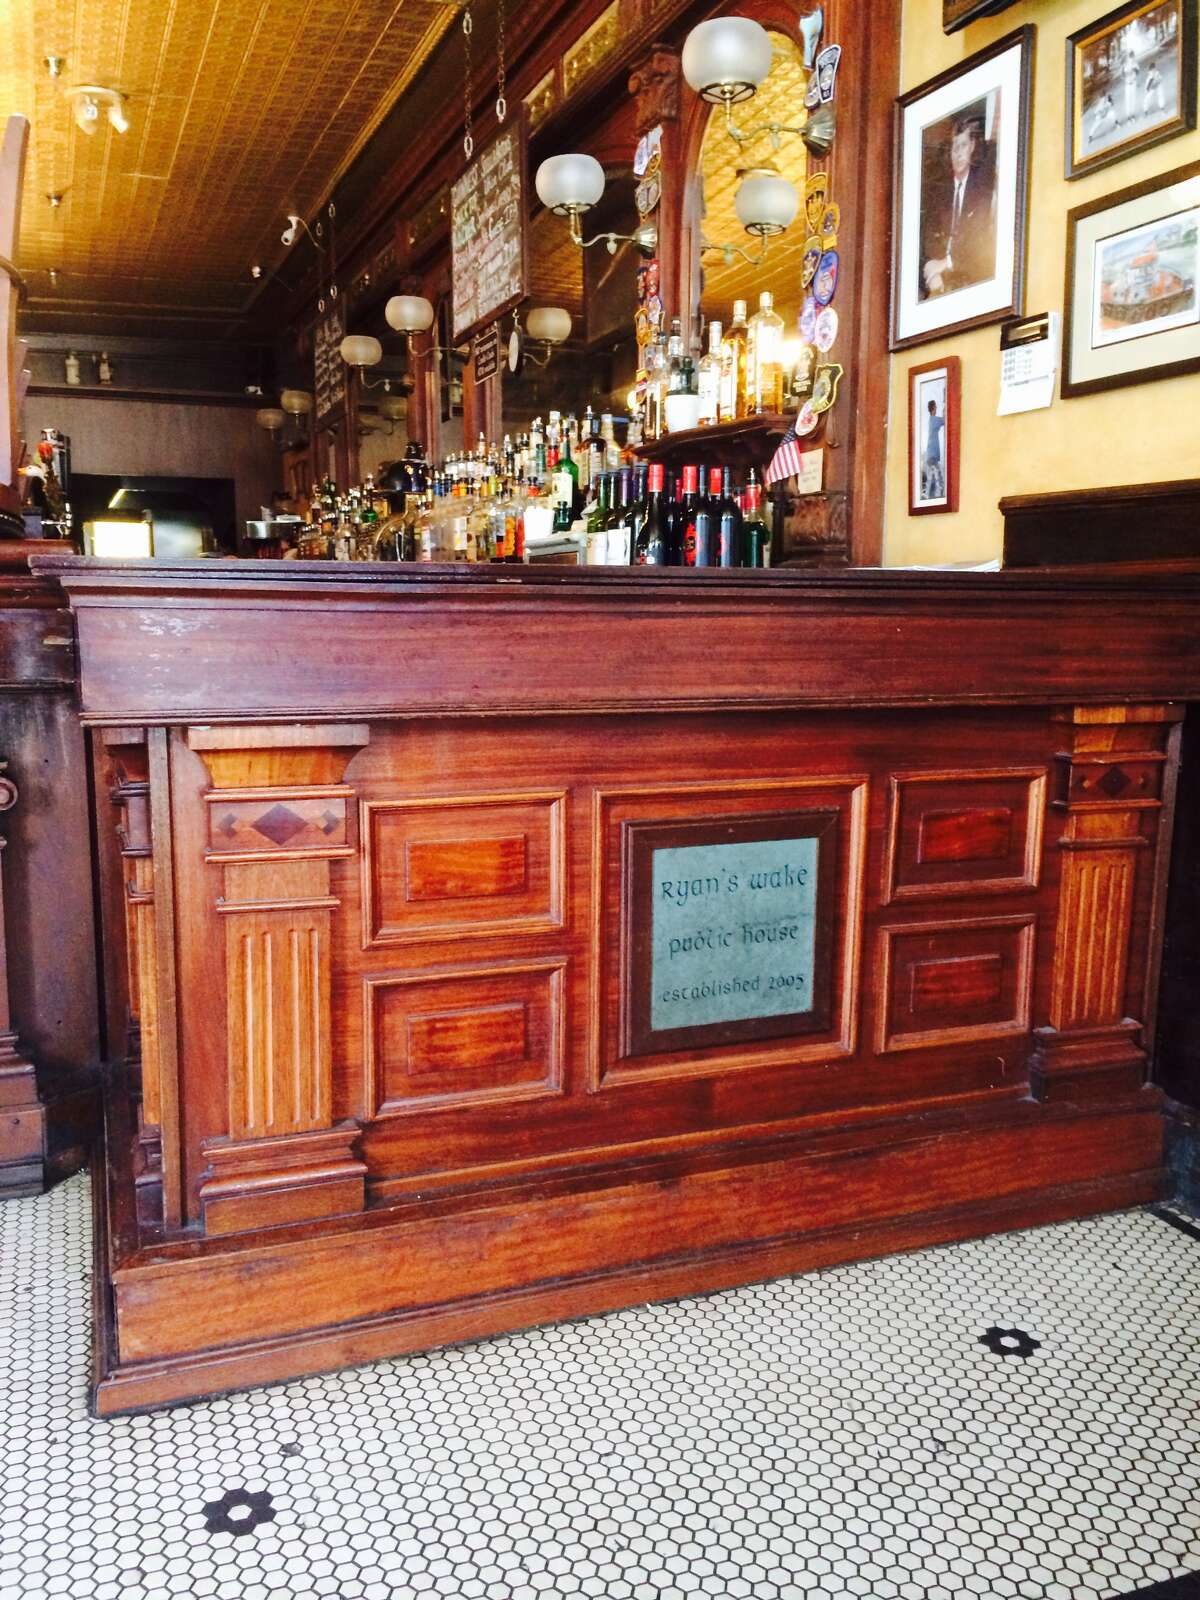 Peter Albrecht, of Troy, a master carpenter and raconteur who died Wednesday at 62, built this section of the bar at Ryan's Wake in Troy, as well as several other bars and wooden bar elements at pubs across the city. (Photo courtesy of Chris Ryan)